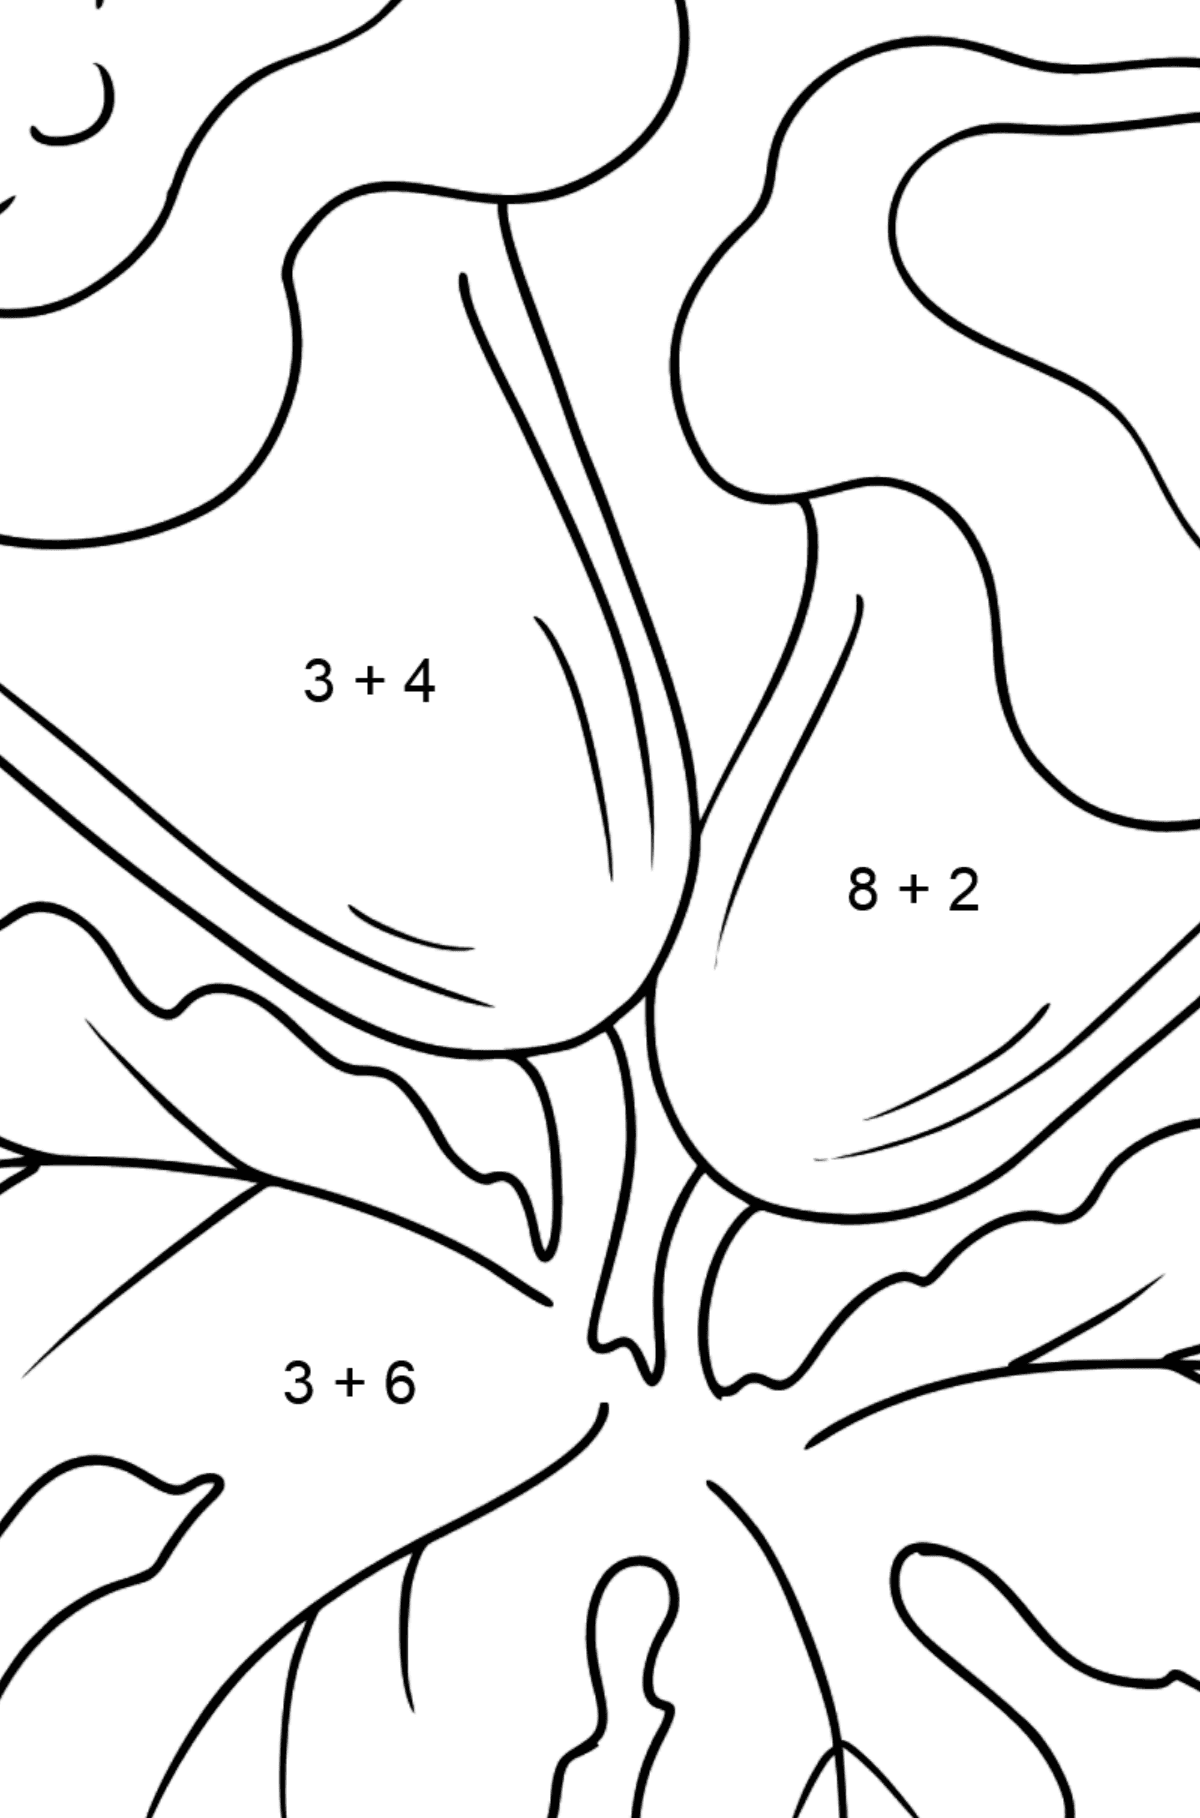 Coloring Page - Indoor flowers - Math Coloring - Addition for Kids